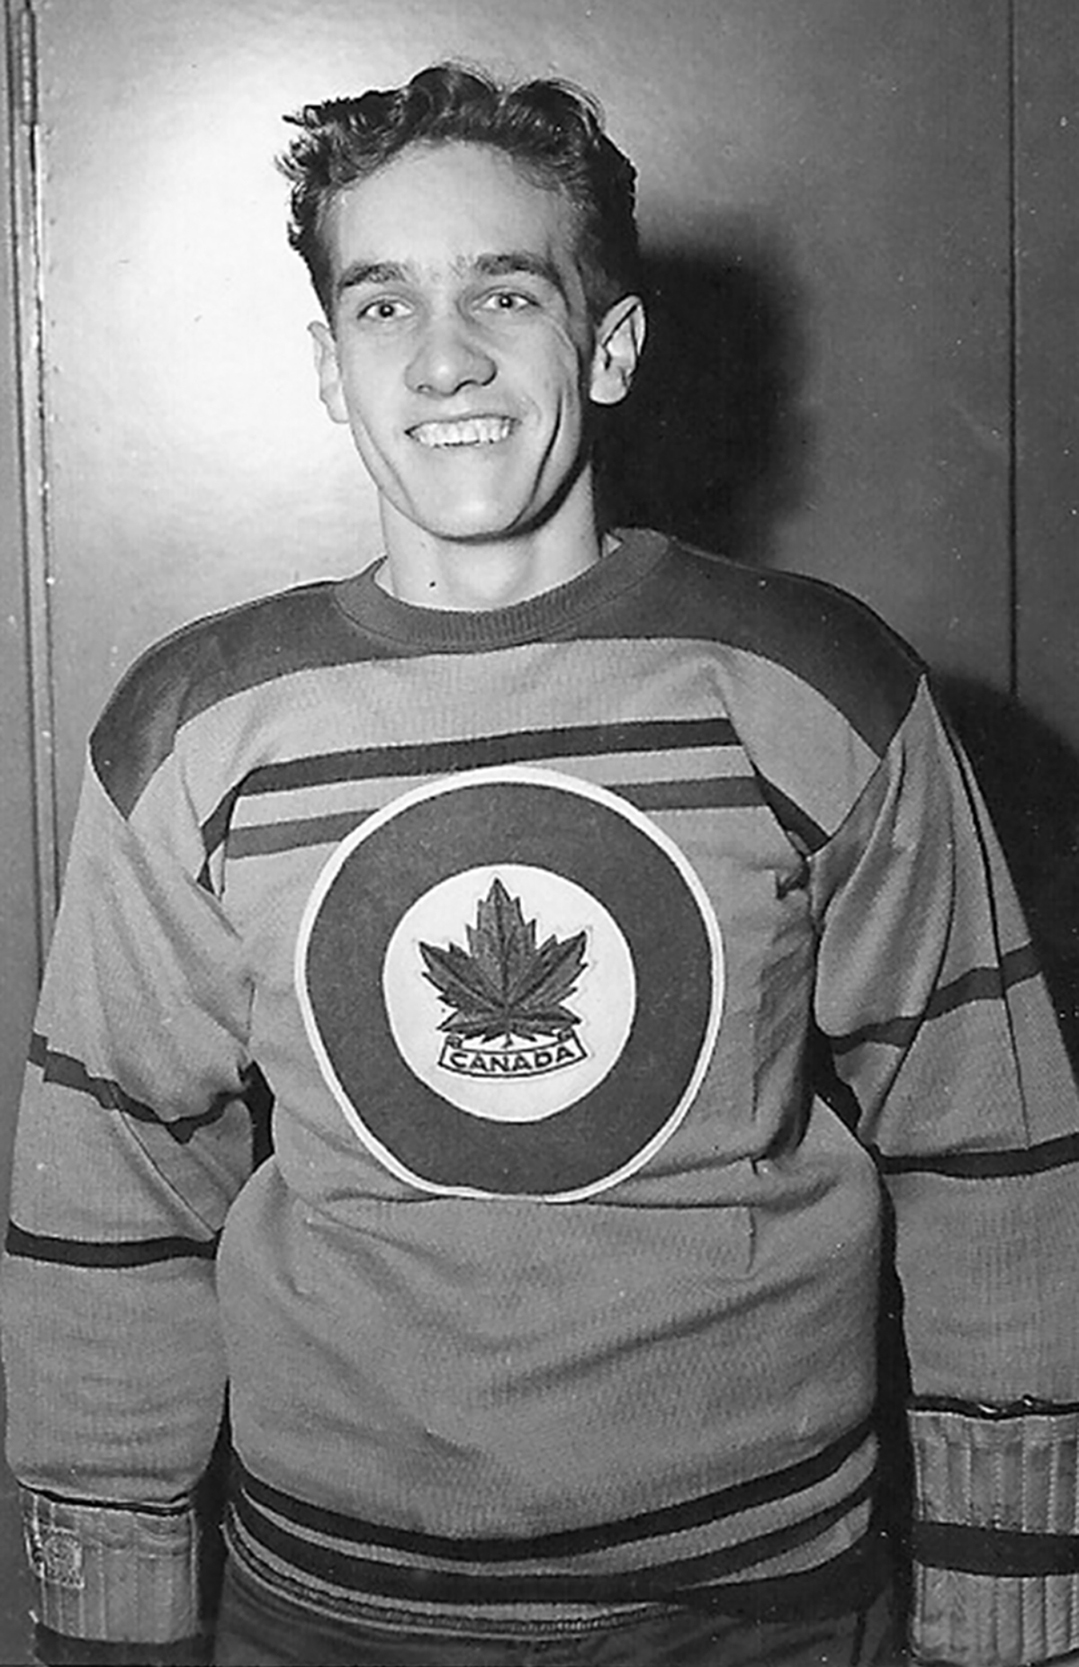 A hockey player in his uniform looks at the camera and grins.